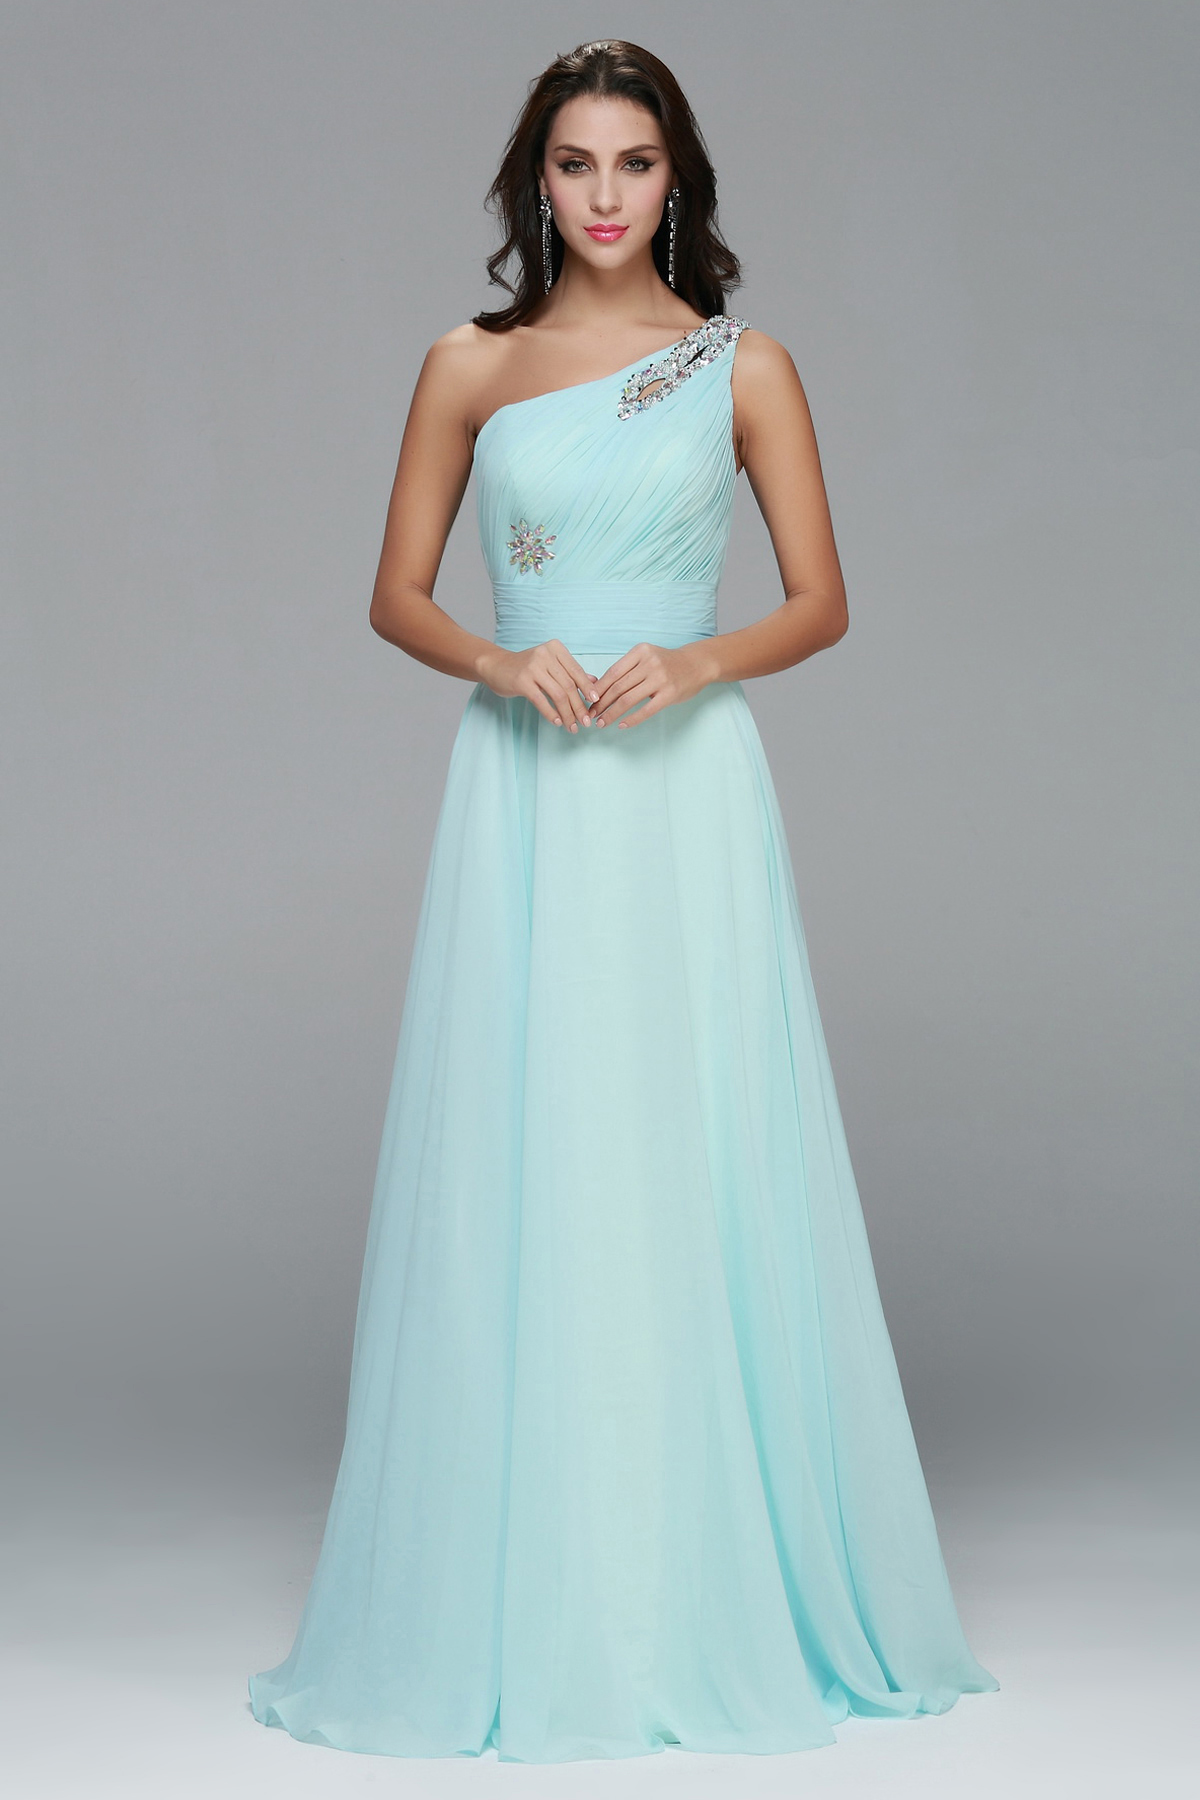 Sleeveless One Shoulder Long Chiffon A-line Junior Prom Dress